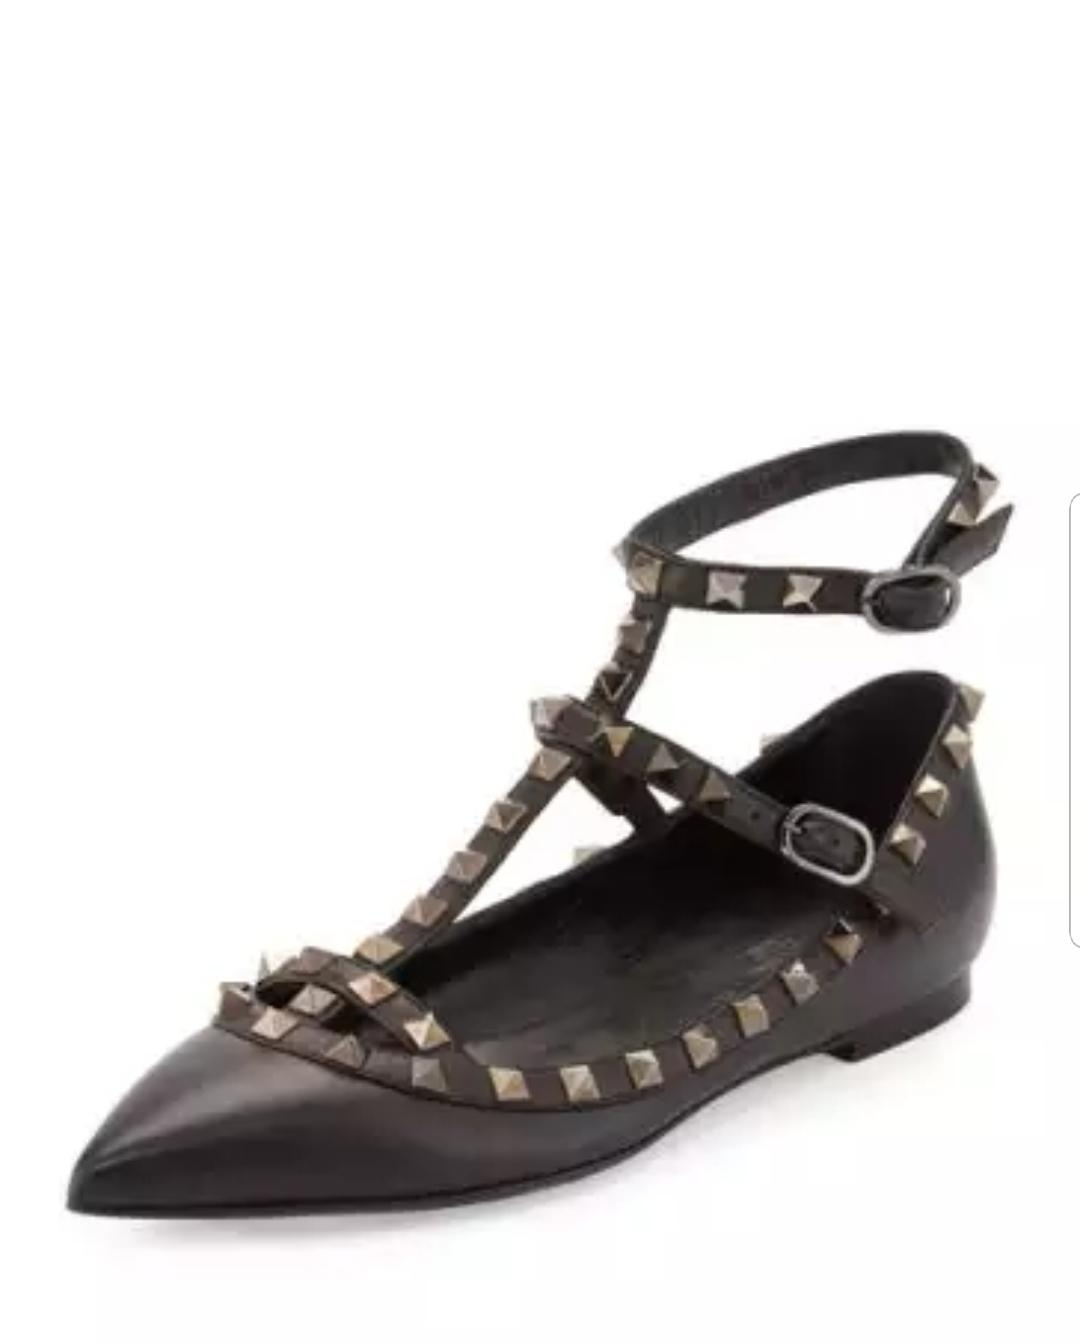 b0898f84ba16 Valentino Black Patent Leather Rockstud Cage Pointy - - - Flats Size EU 39  (Approx. US 9) Regular (M